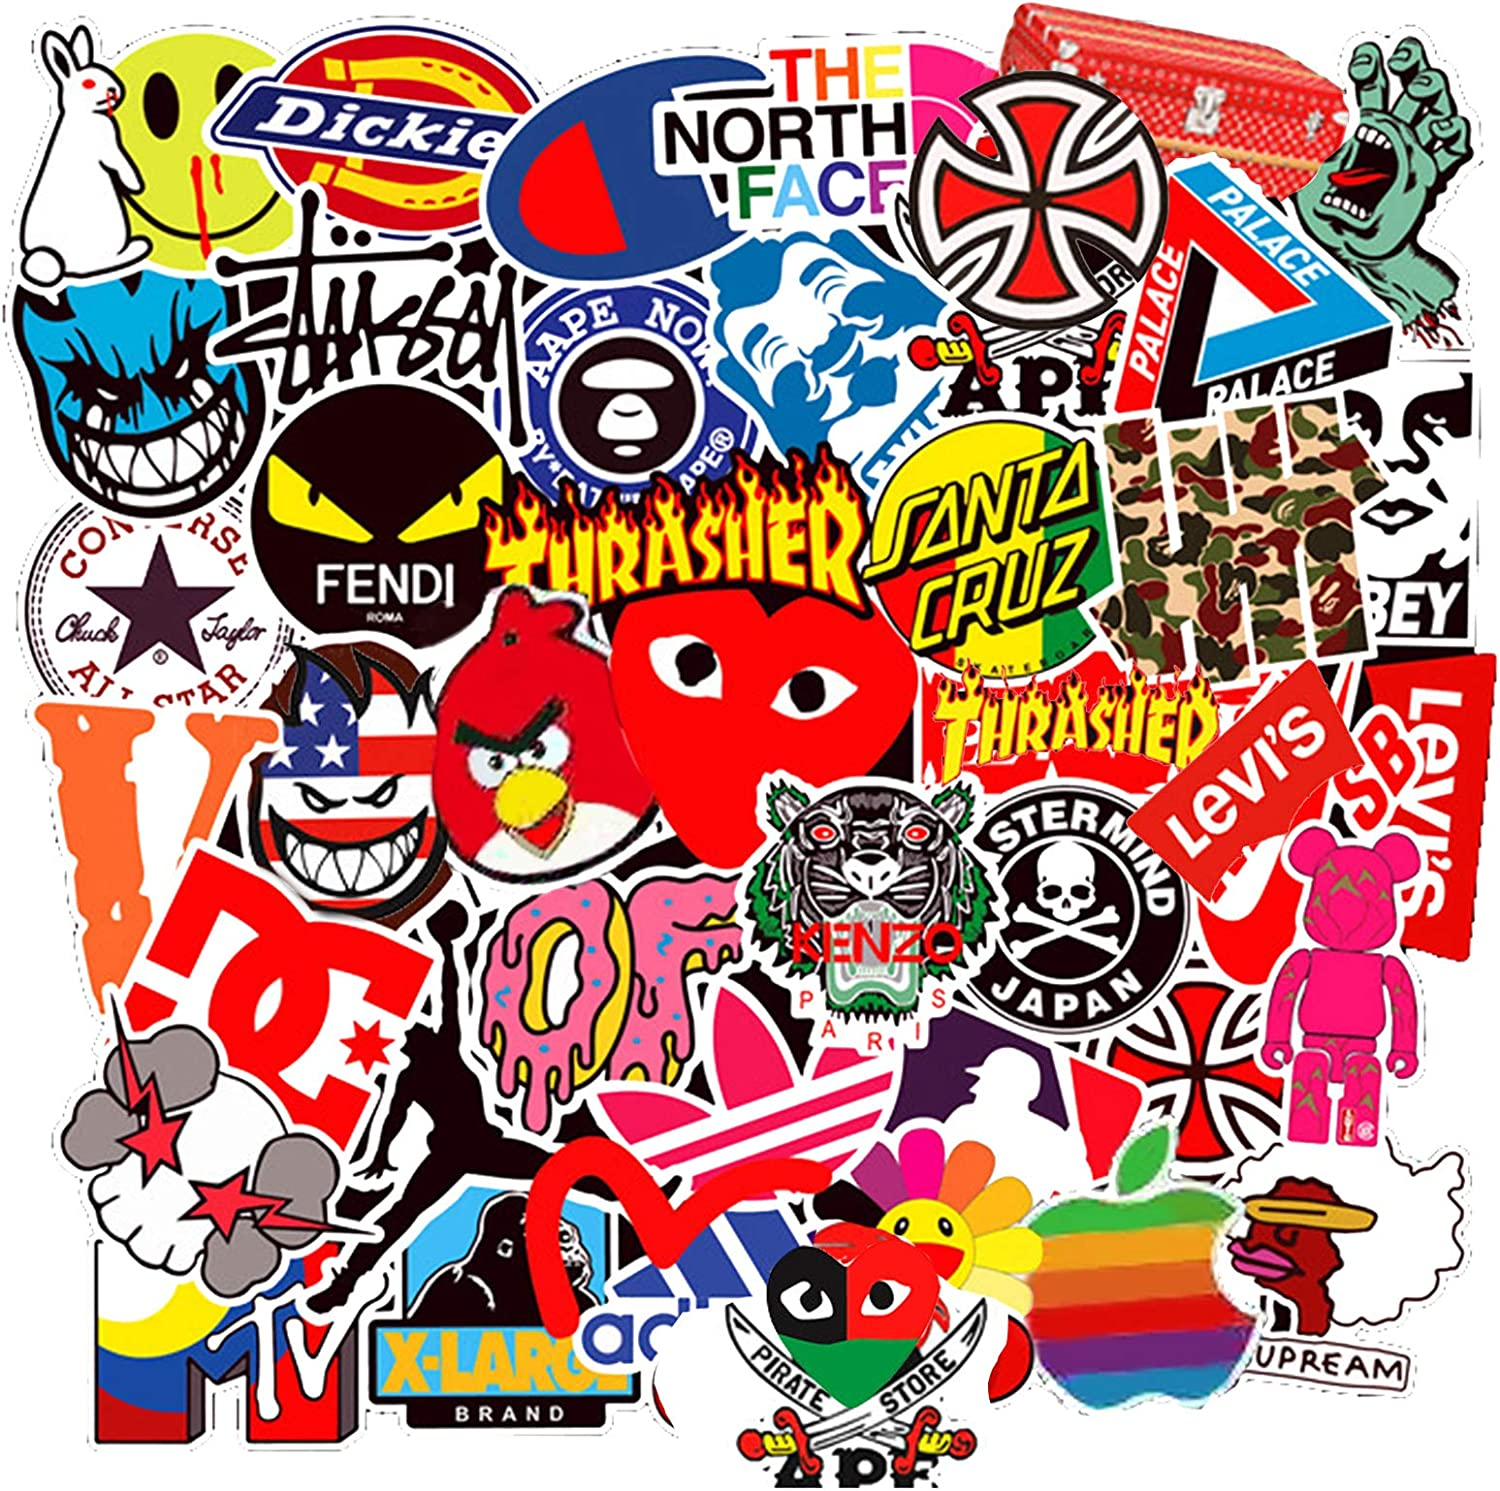 100 Pcs Fashion Brand Logo Stickers for Water Bottle Laptop Motorcycle Bike Bicycle Skateboard Luggage